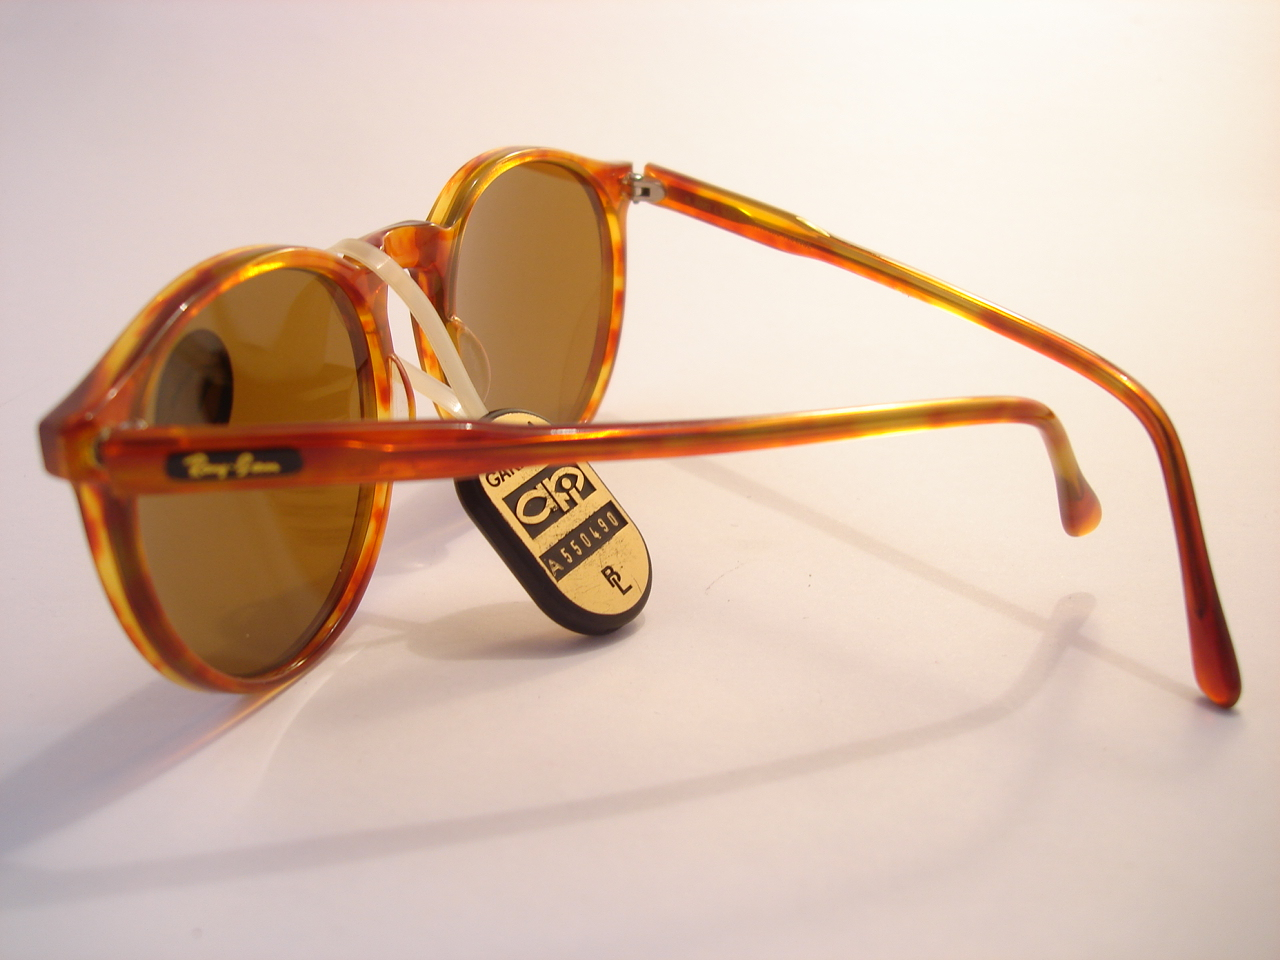 Ray Ban Vintage Glasses Frames : theothersideofthepillow: vintage RAY BAN by BAUSCH AND ...